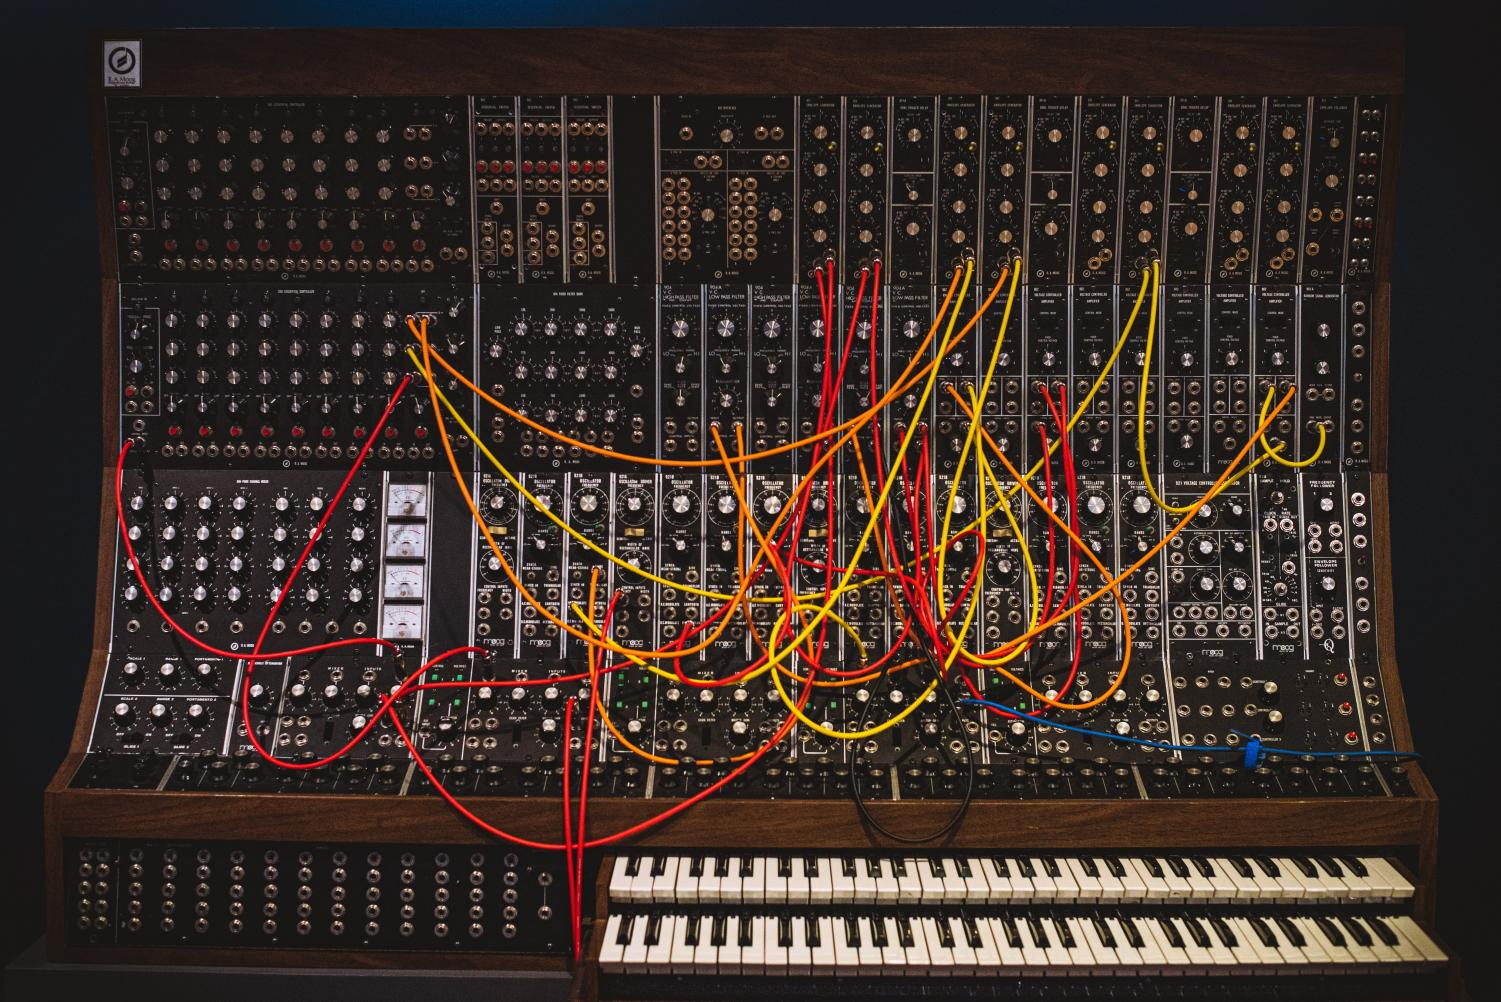 Here is the Moog Synthesizer designed by Robert Moog. One of the first synthesizers used in music, it allowed musicians to create their own sounds and to express themselves in an entirely new way. Albums such as